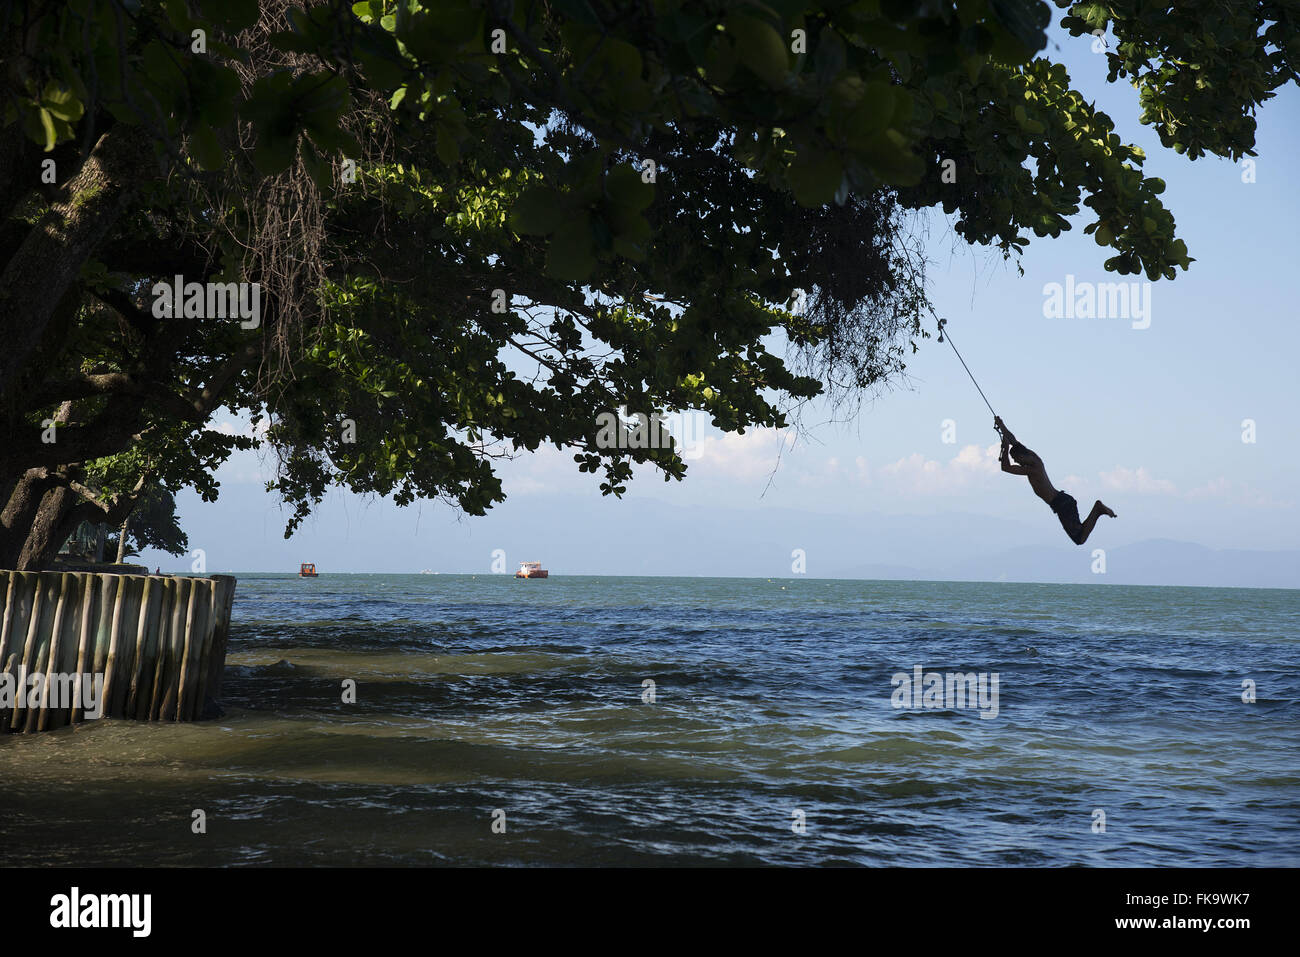 Young playing in the sea with swing rope tied in a tree - Stock Image